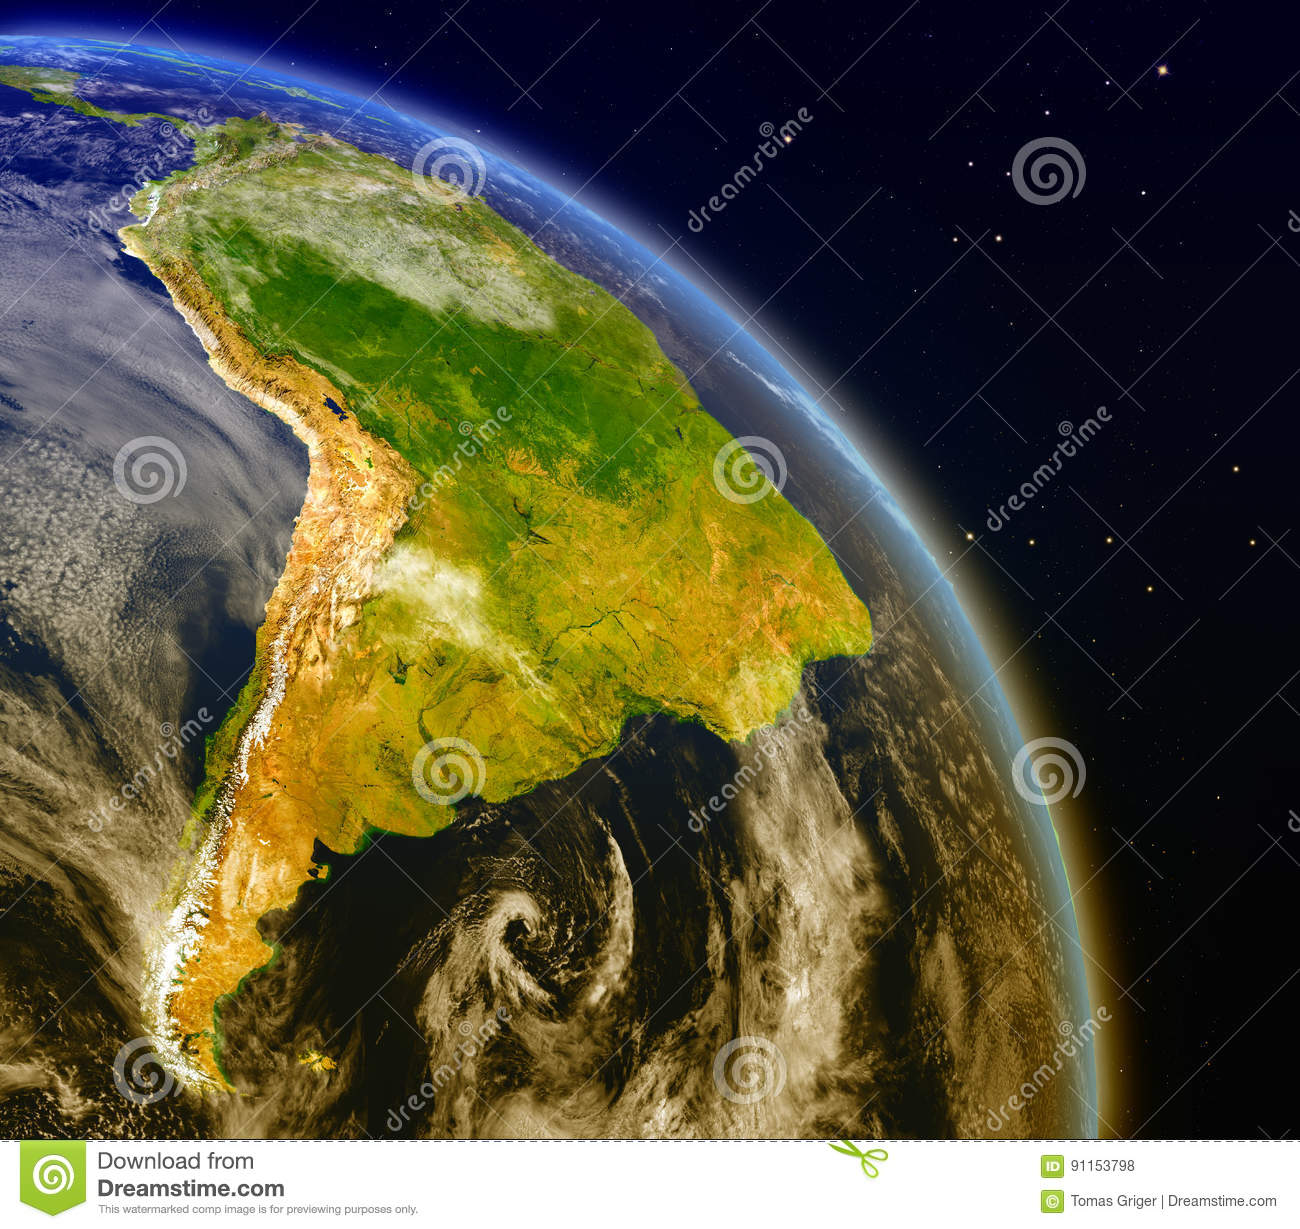 South America from space stock illustration. Illustration of ... on